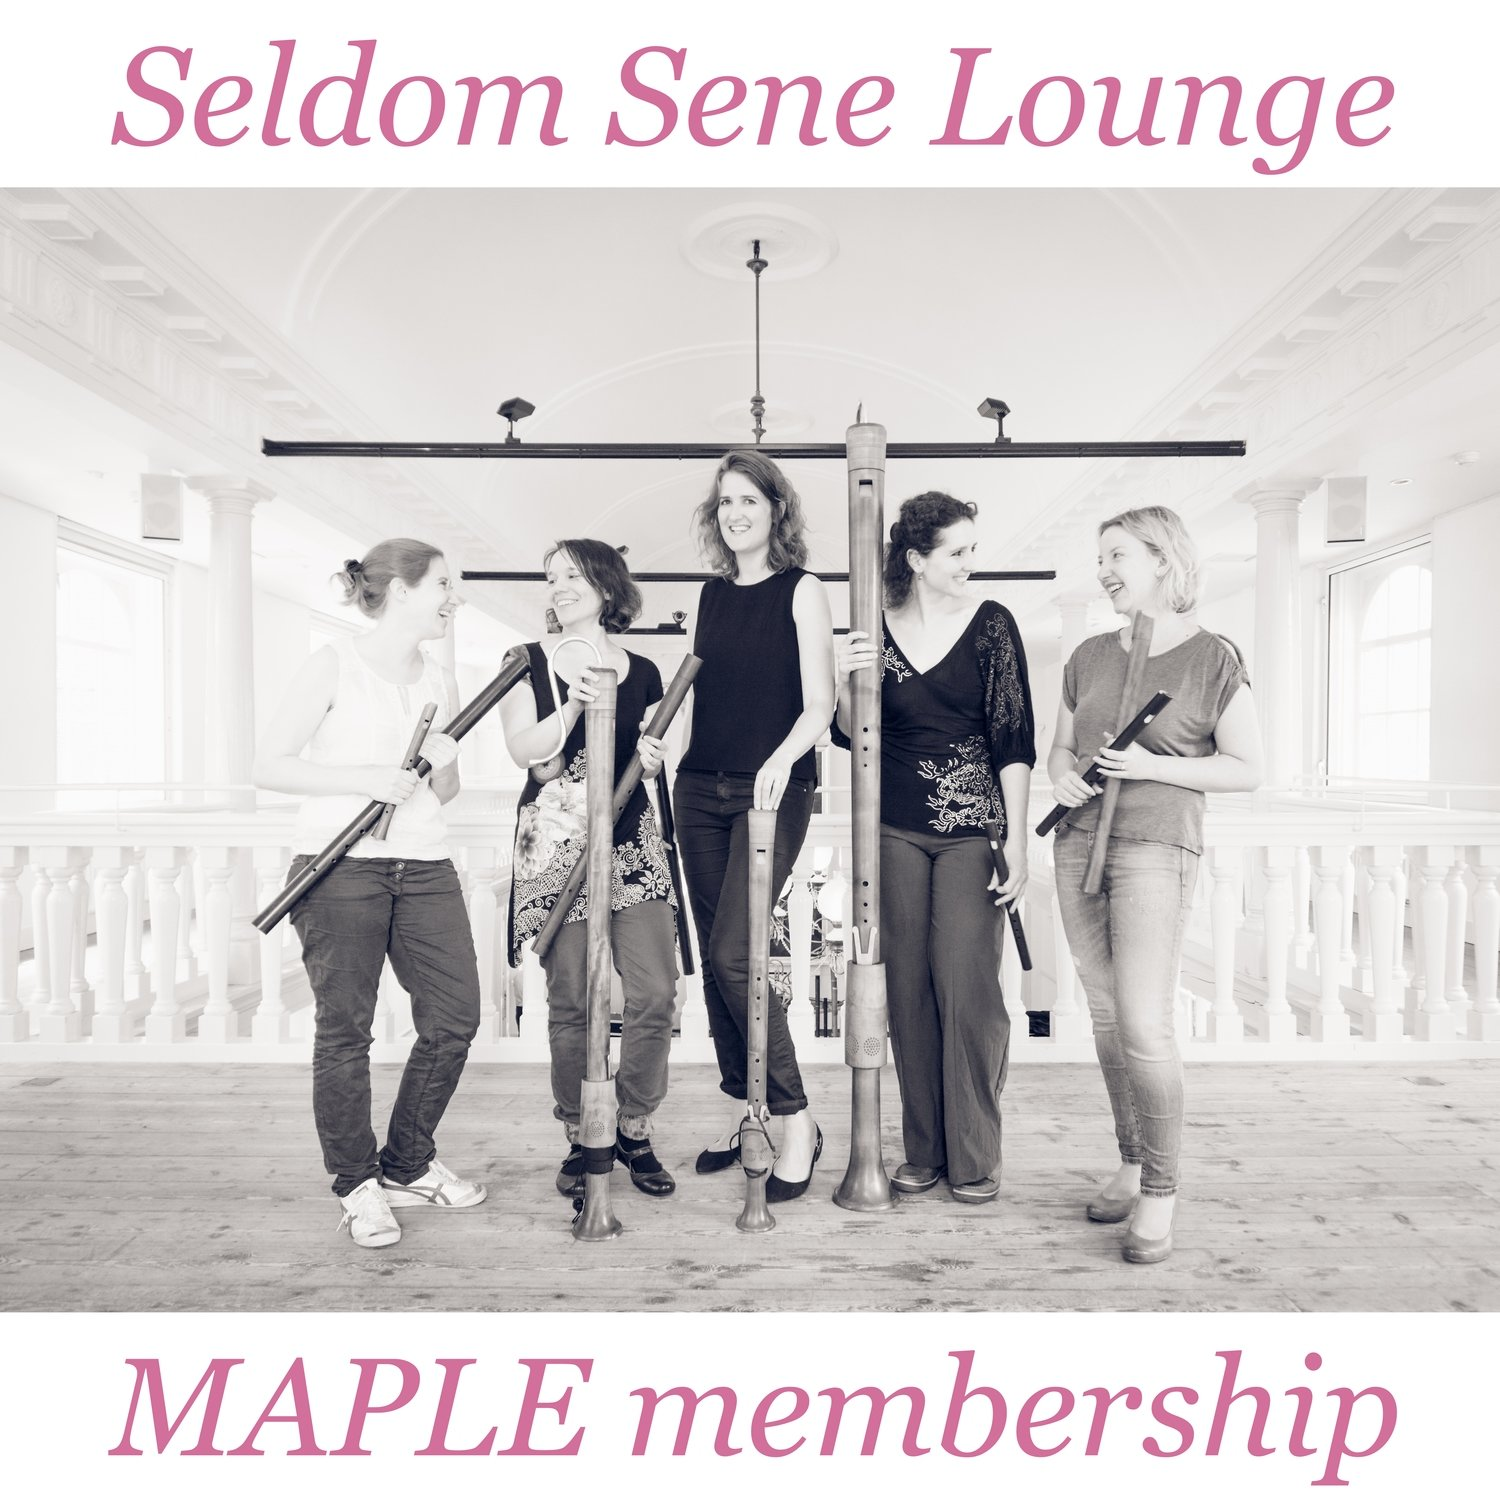 Seldom Sene Lounge MAPLE membership